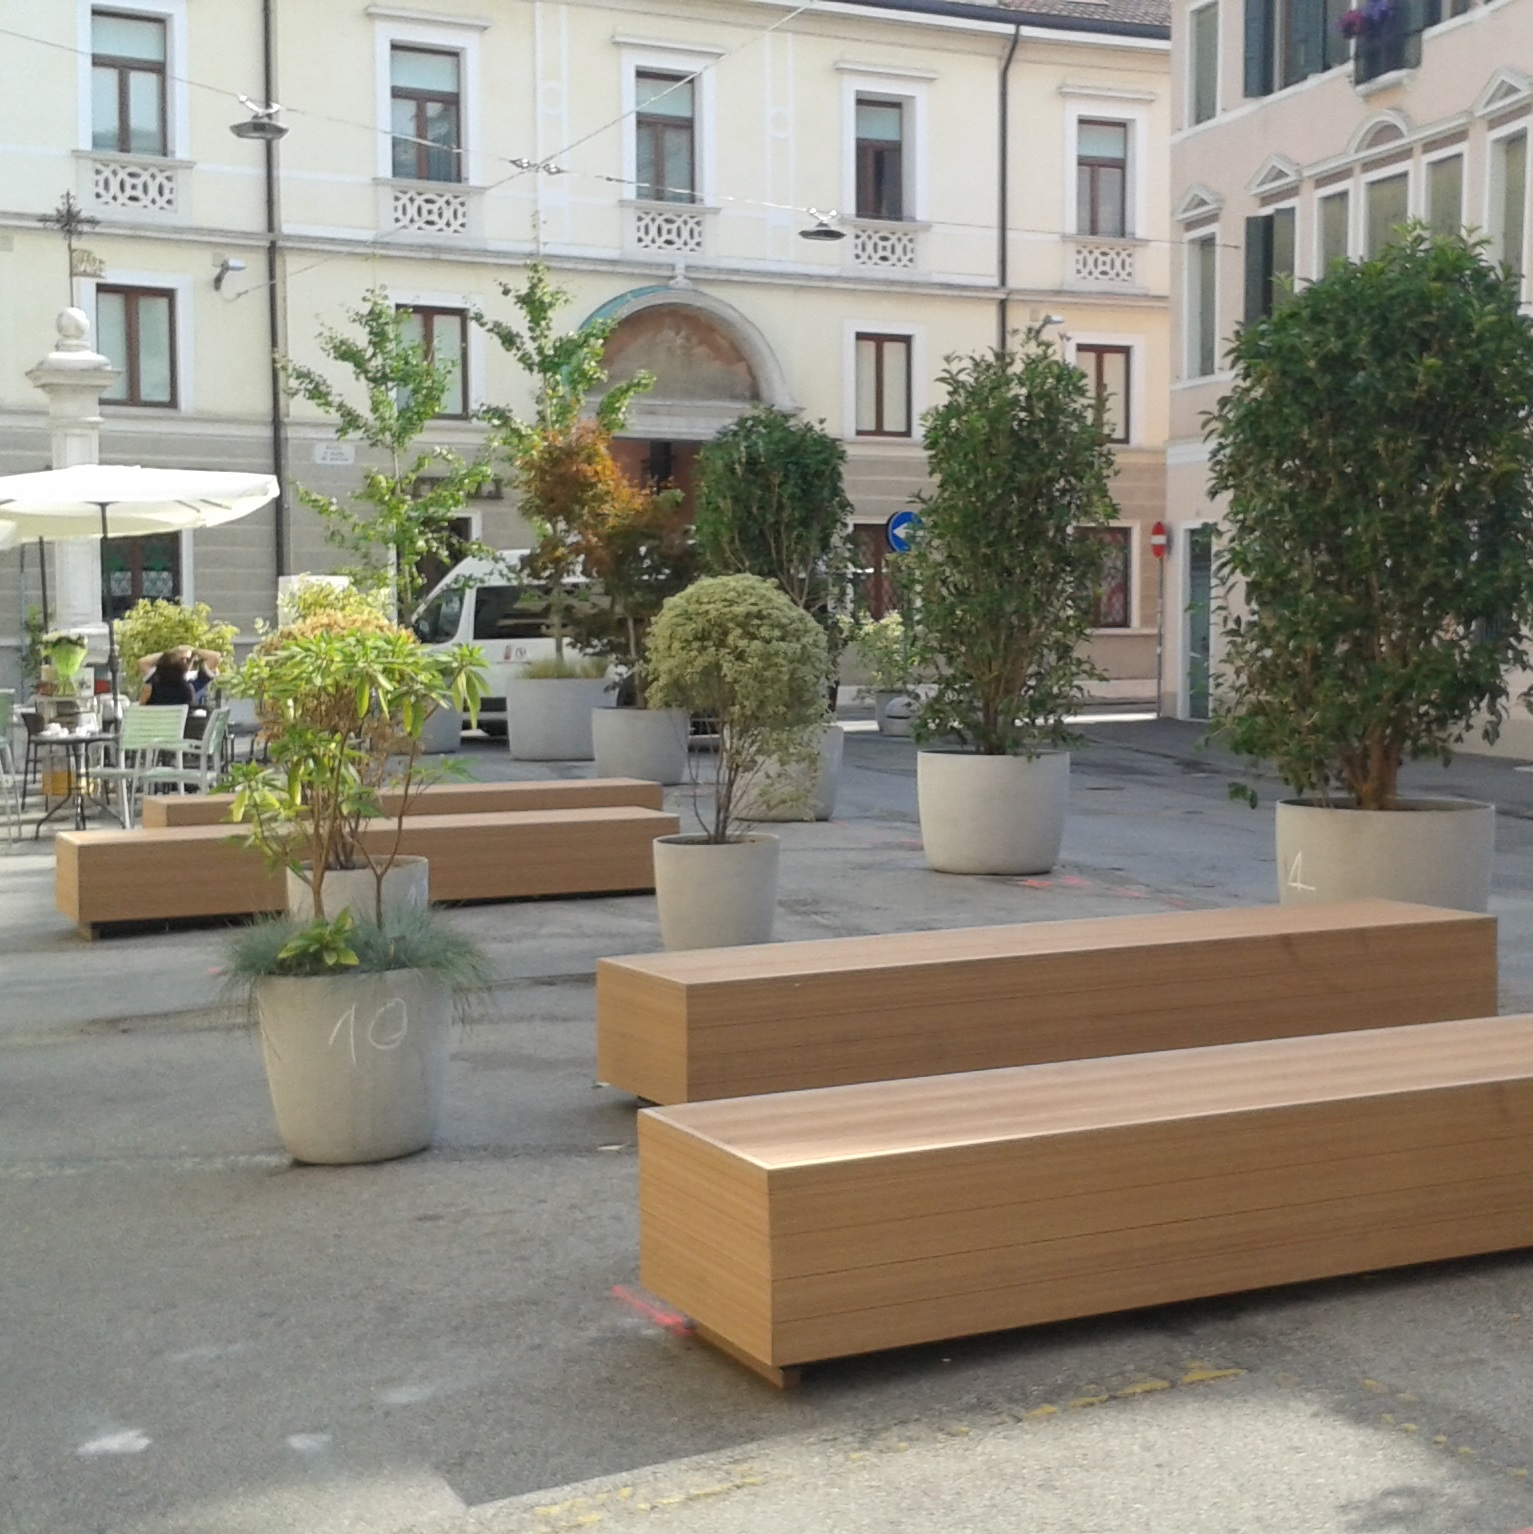 Polemica sulle panchine (4)